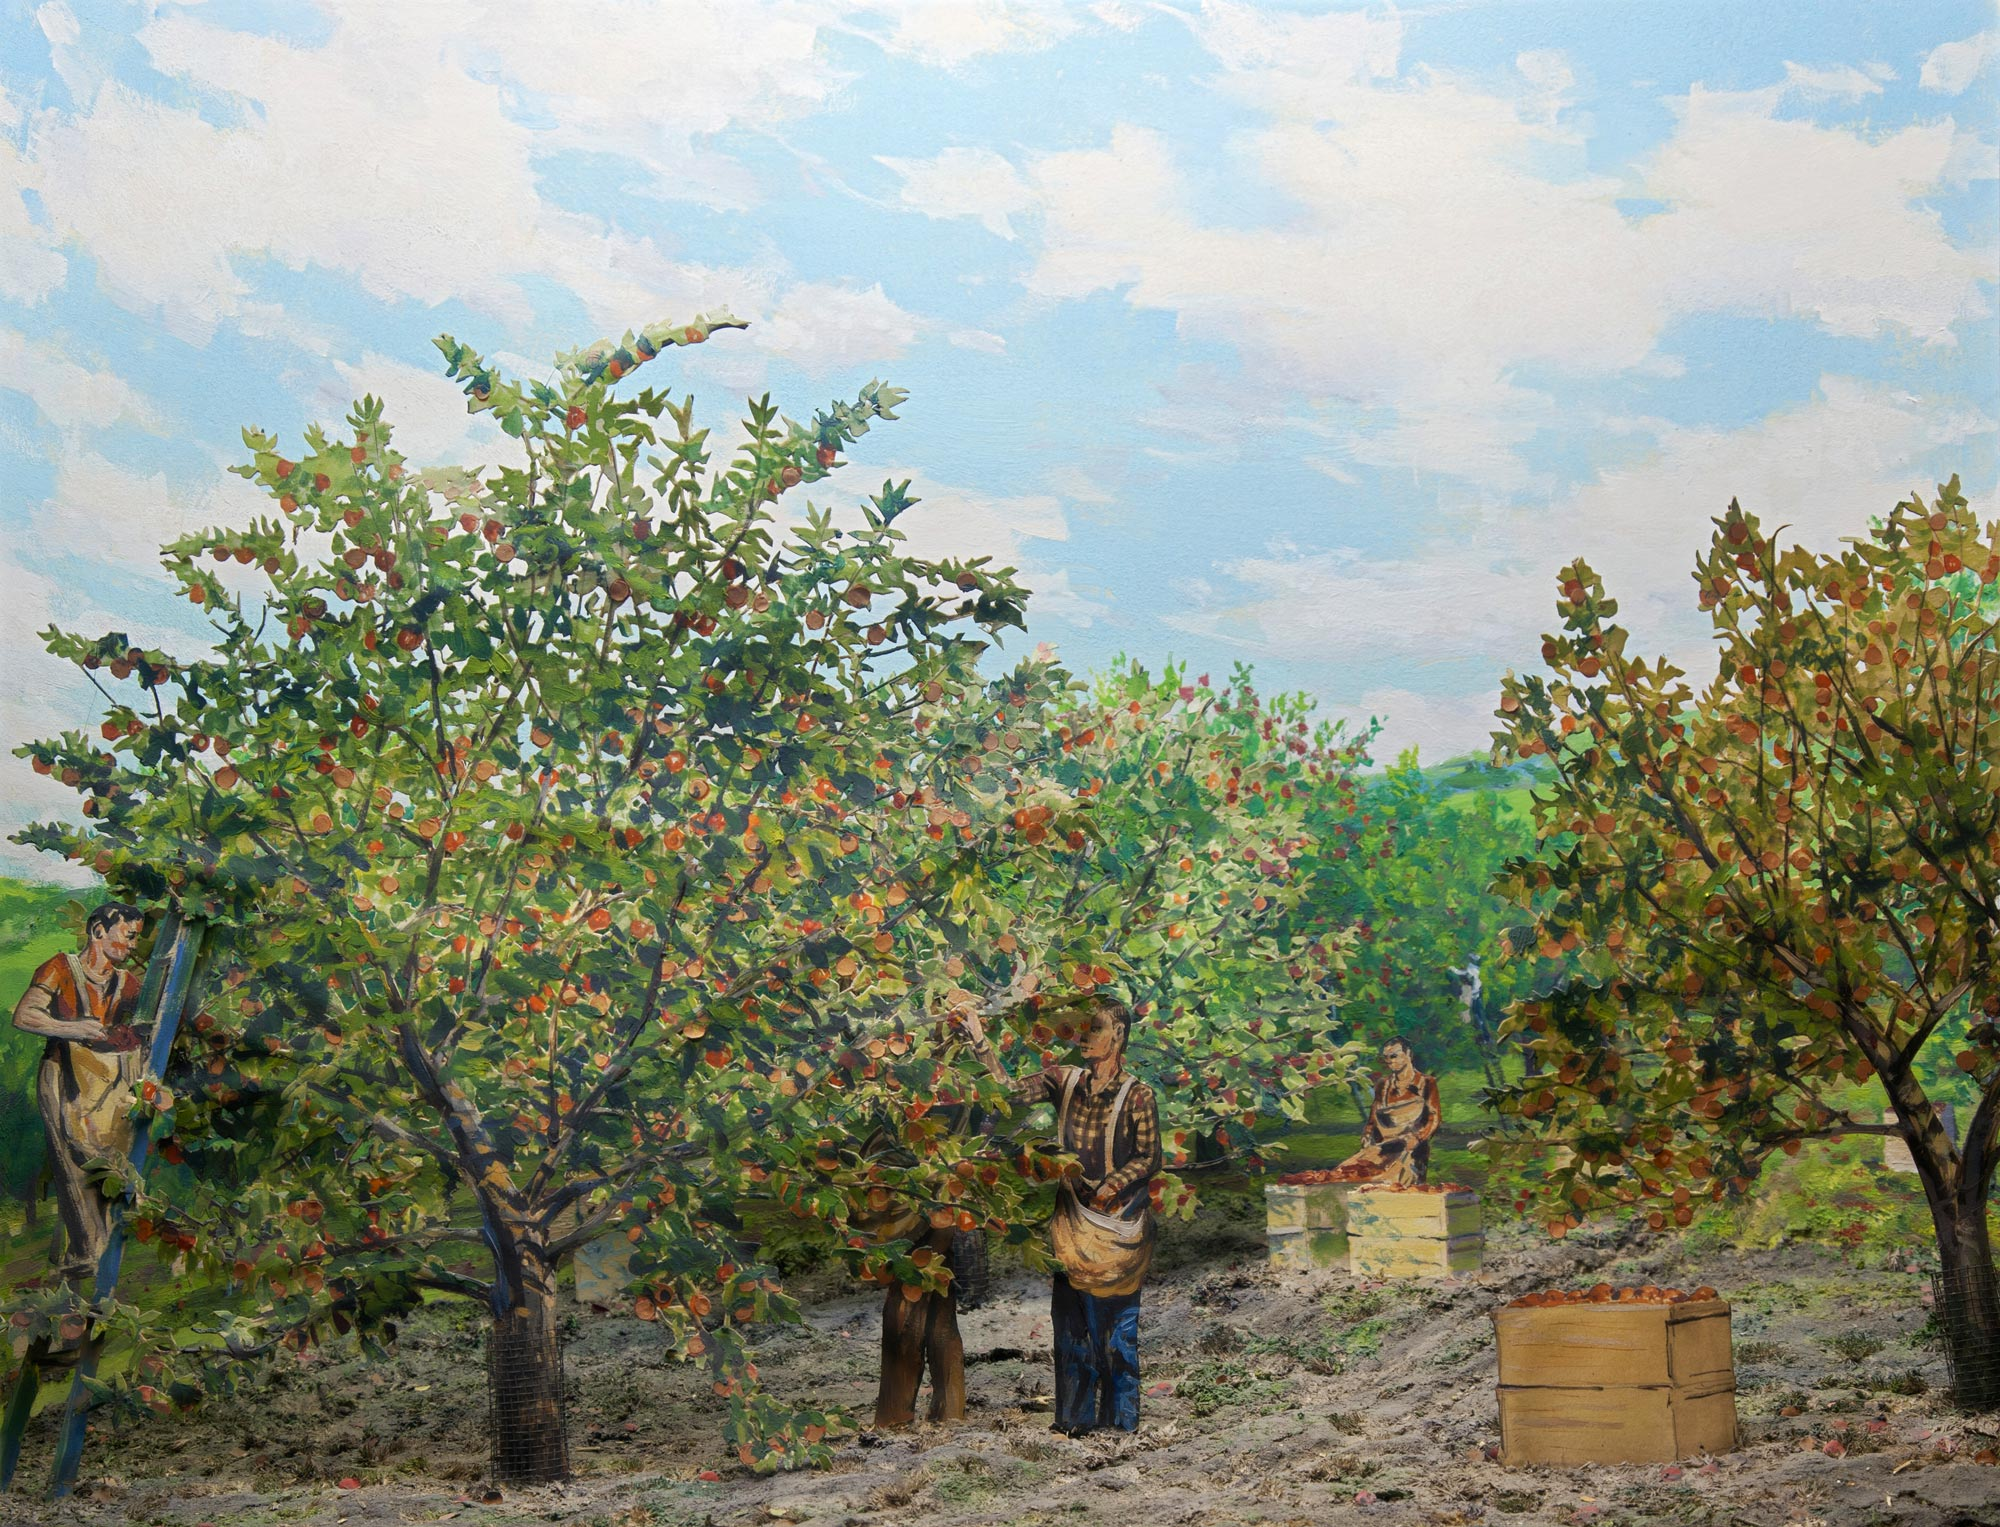 Diorama showing the harvest of an apple orchard.